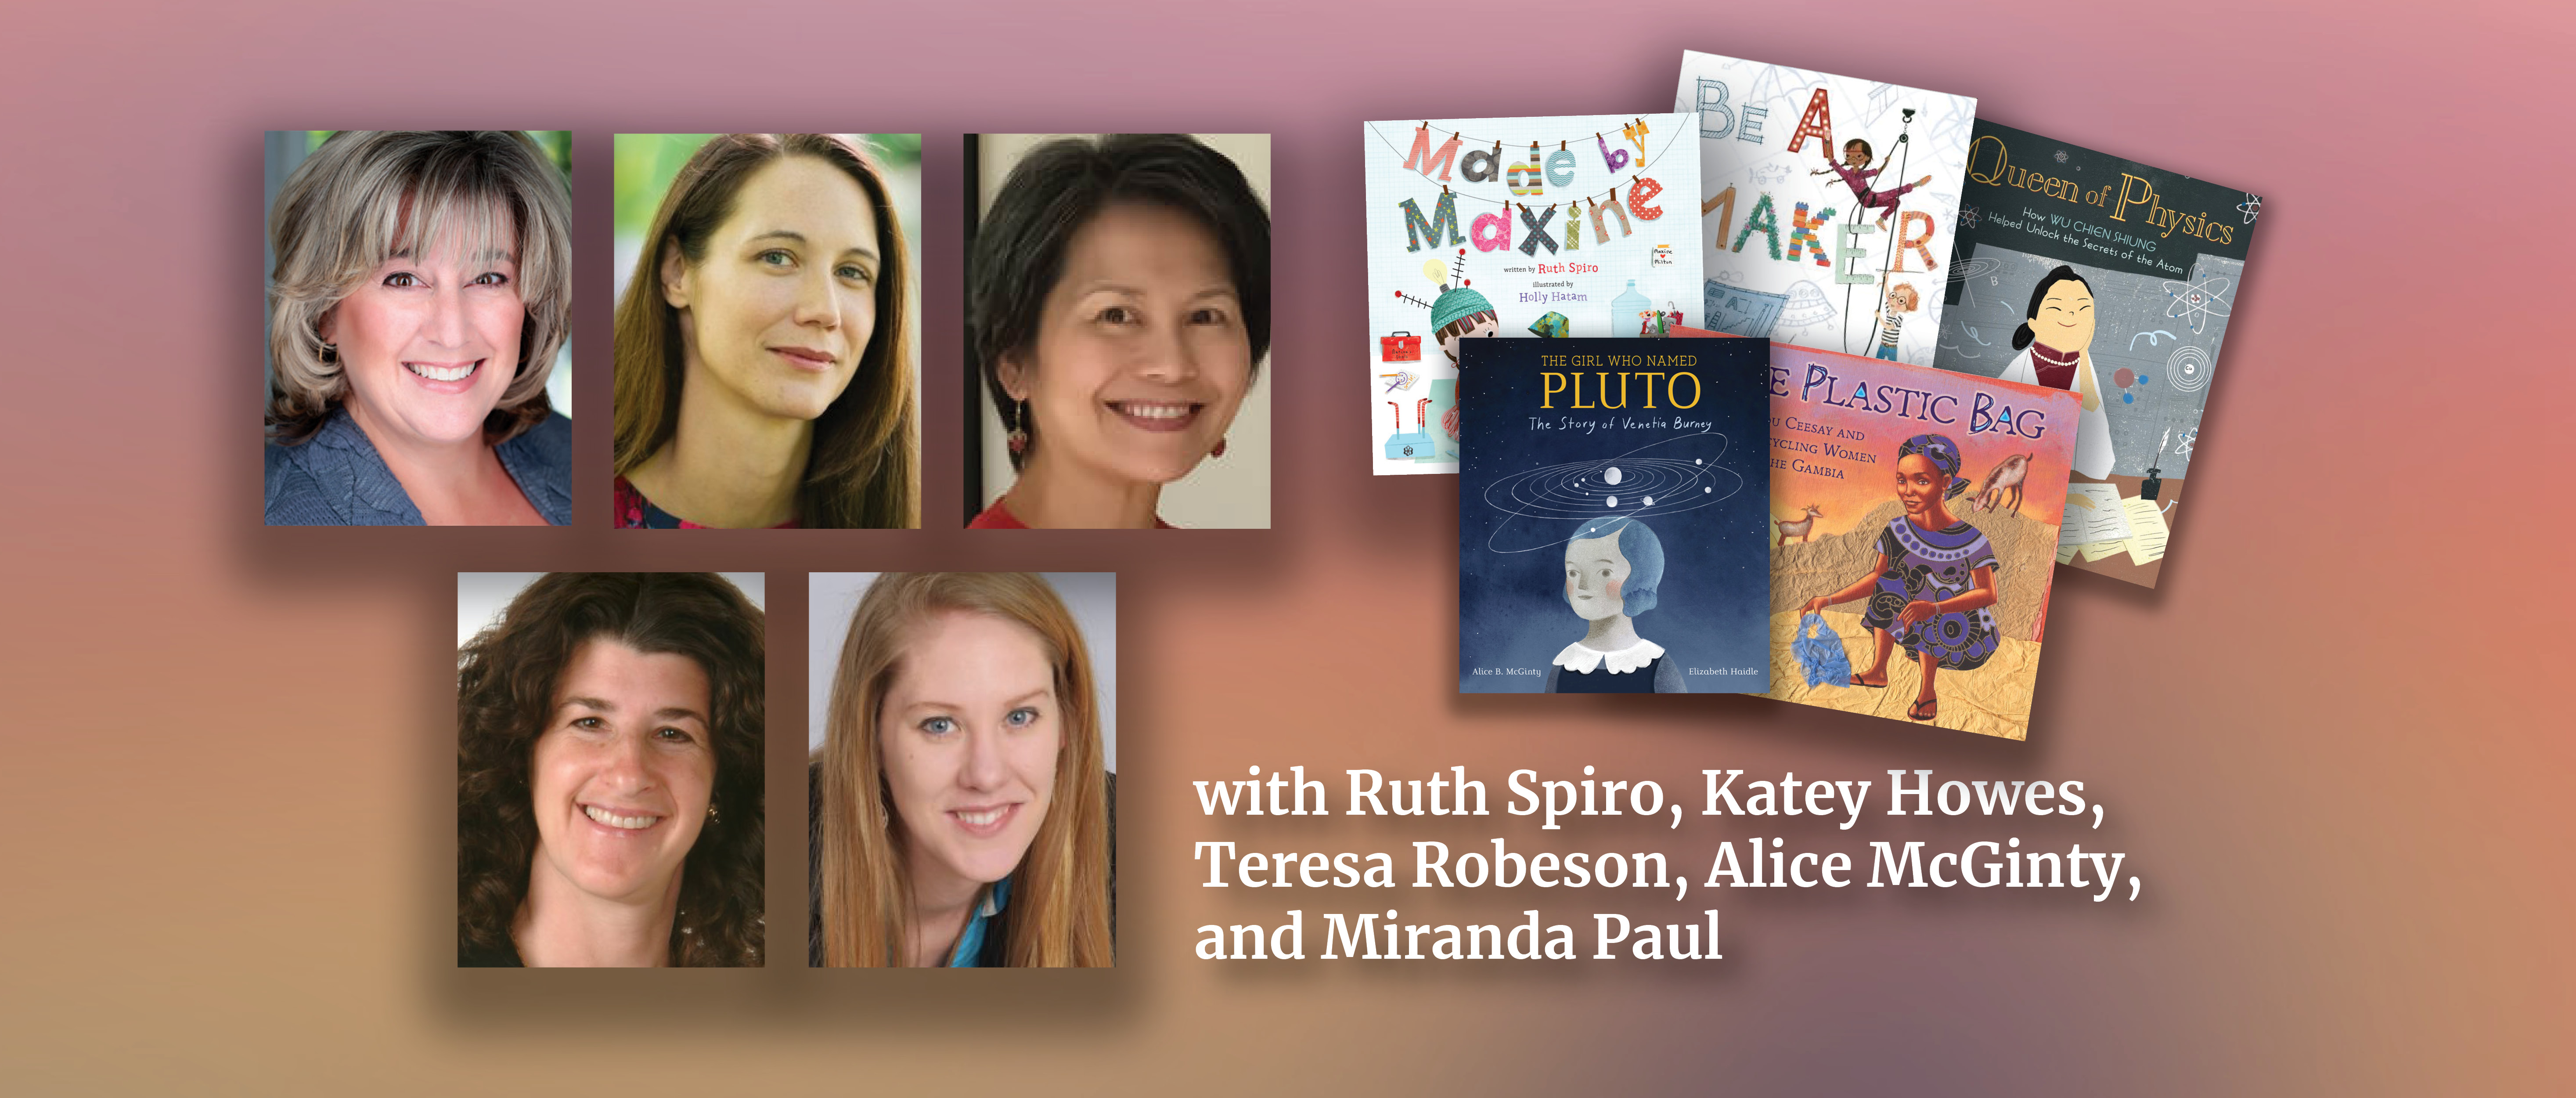 Ruth Spiro, Katey Howes, Teresa Robeson, Alice McGinty, and Miranda Paul